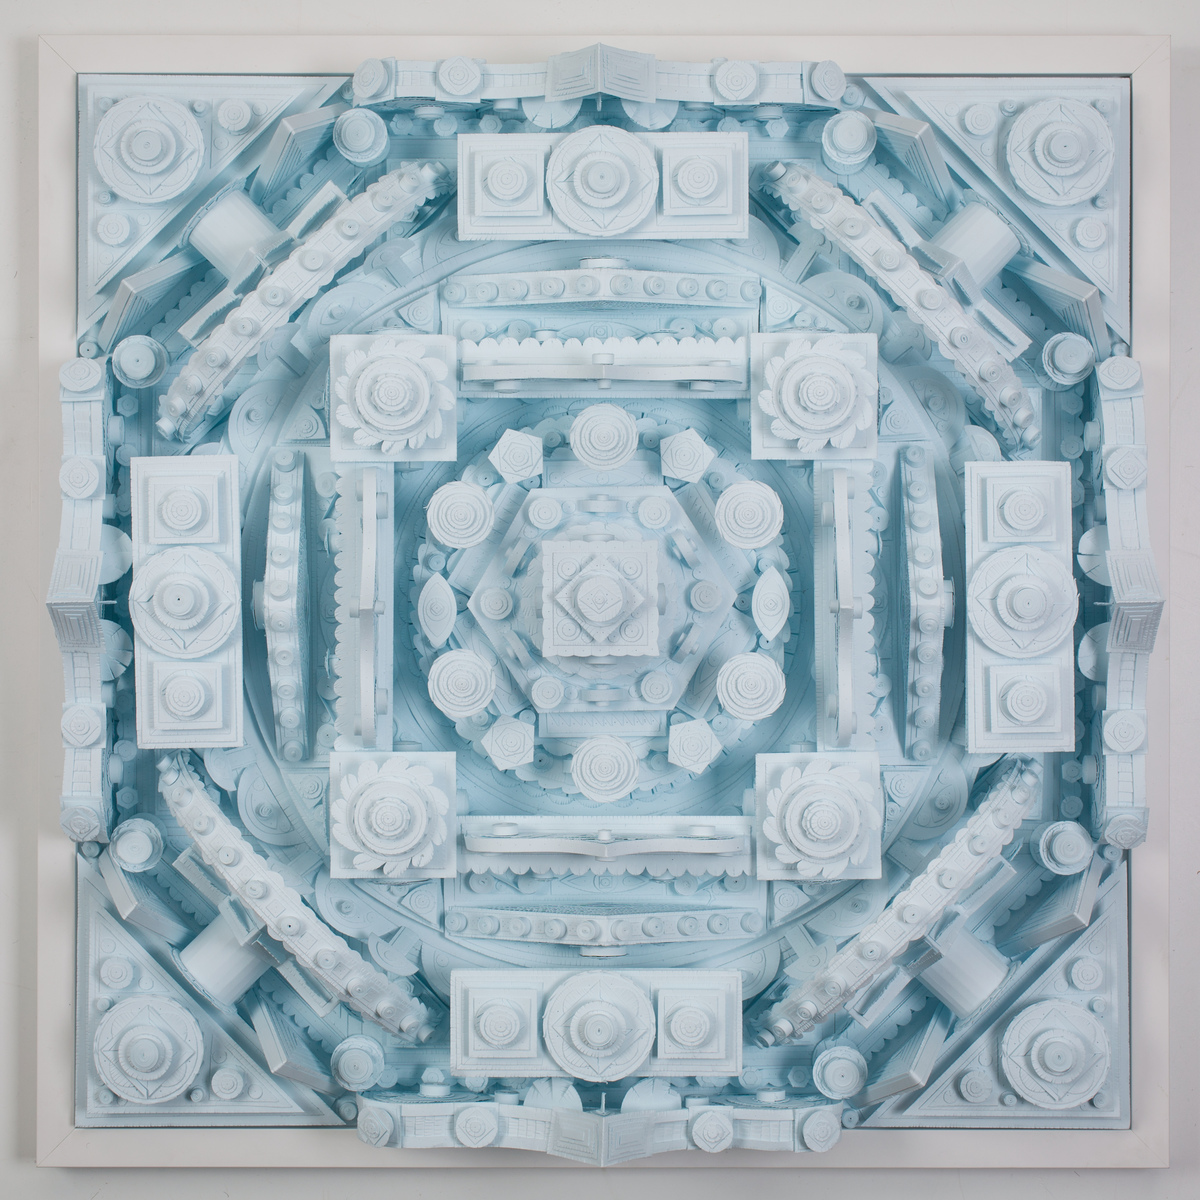 Michael Velliquette Creates Three-Dimensional Monochrome Mandalas from Cut Paper